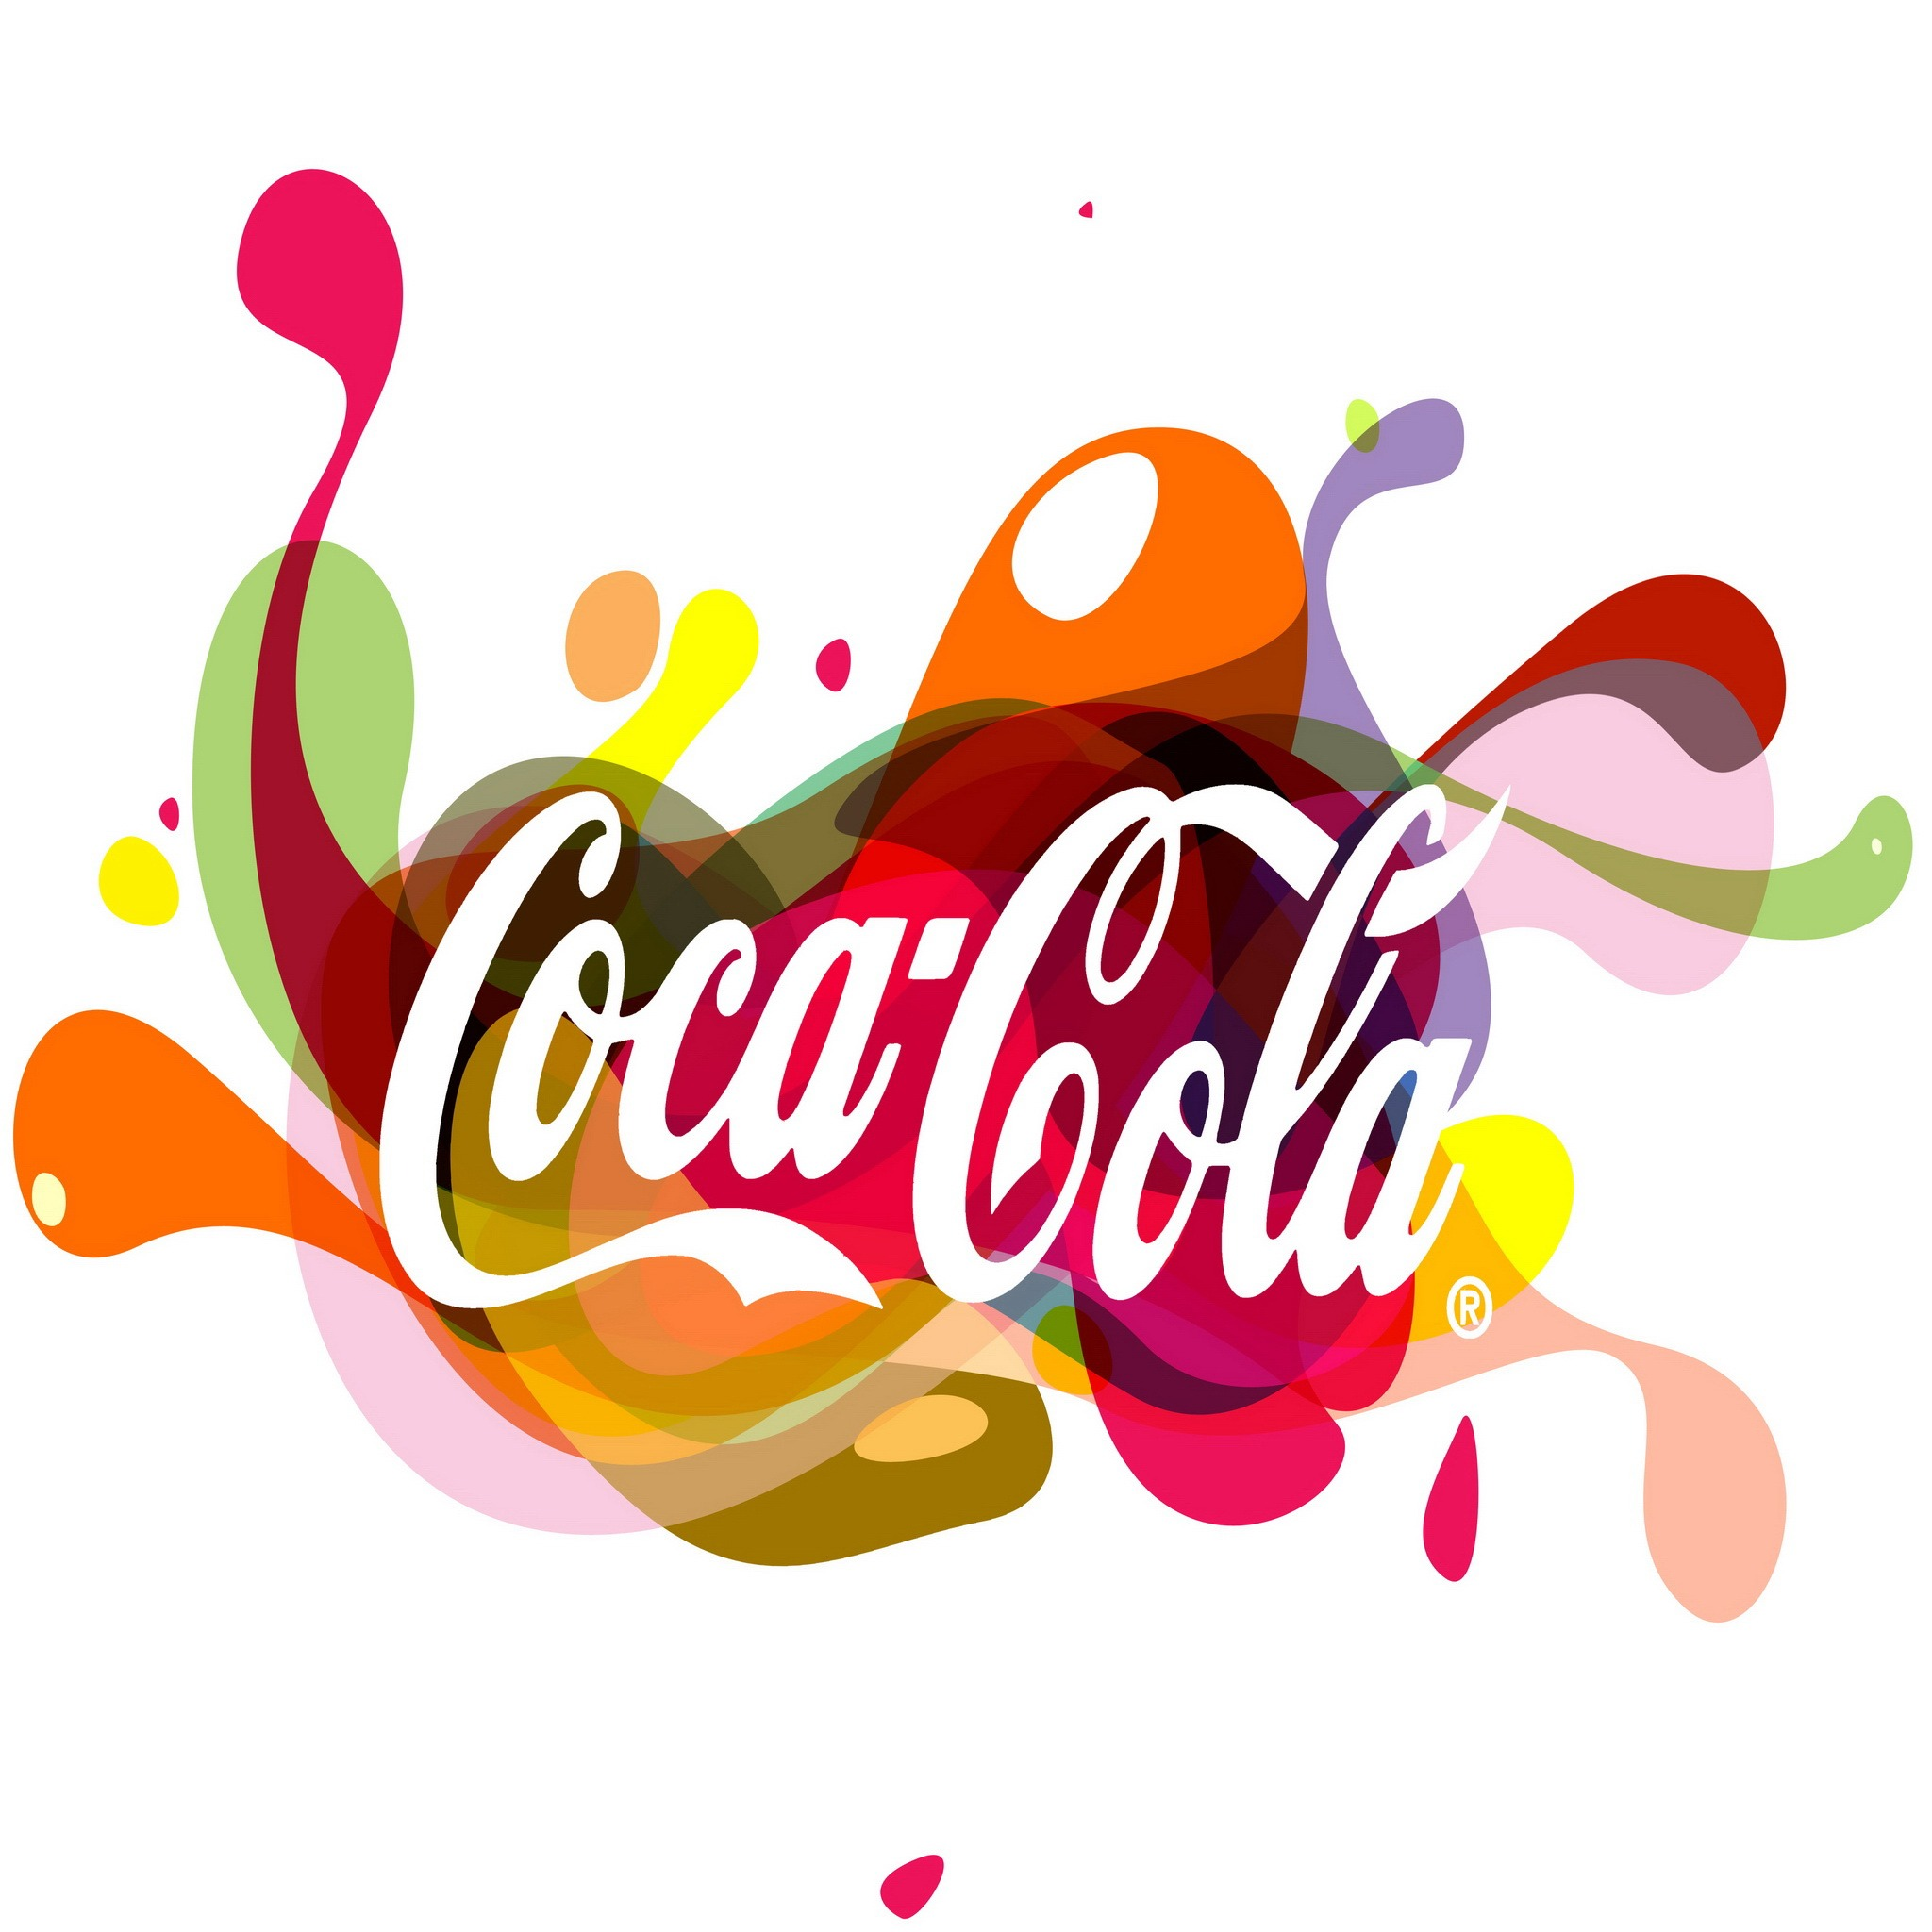 Coca Cola Abstract Wallpaper